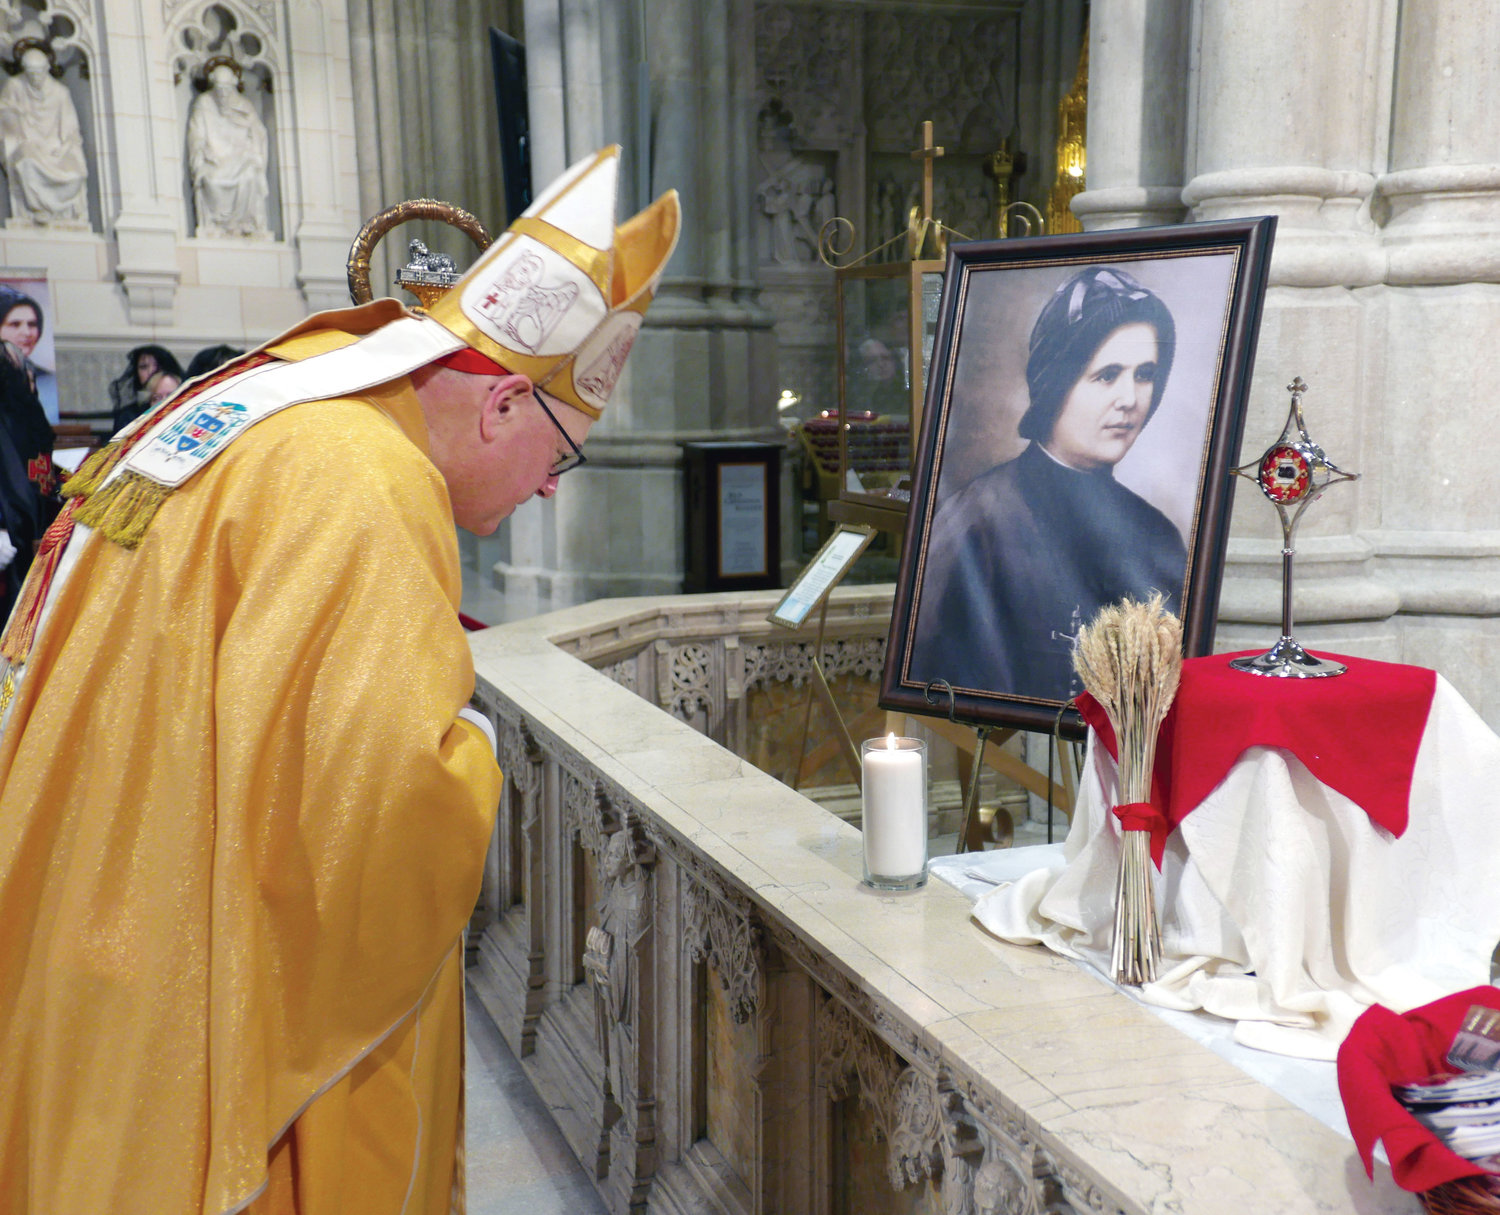 Cardinal Dolan bows before a portrait and the relic of Blessed Clelia Merloni during the opening procession at the Mass of thanksgiving for the beatification of Blessed Clelia at St. Patrick's Cathedral Feb. 9.